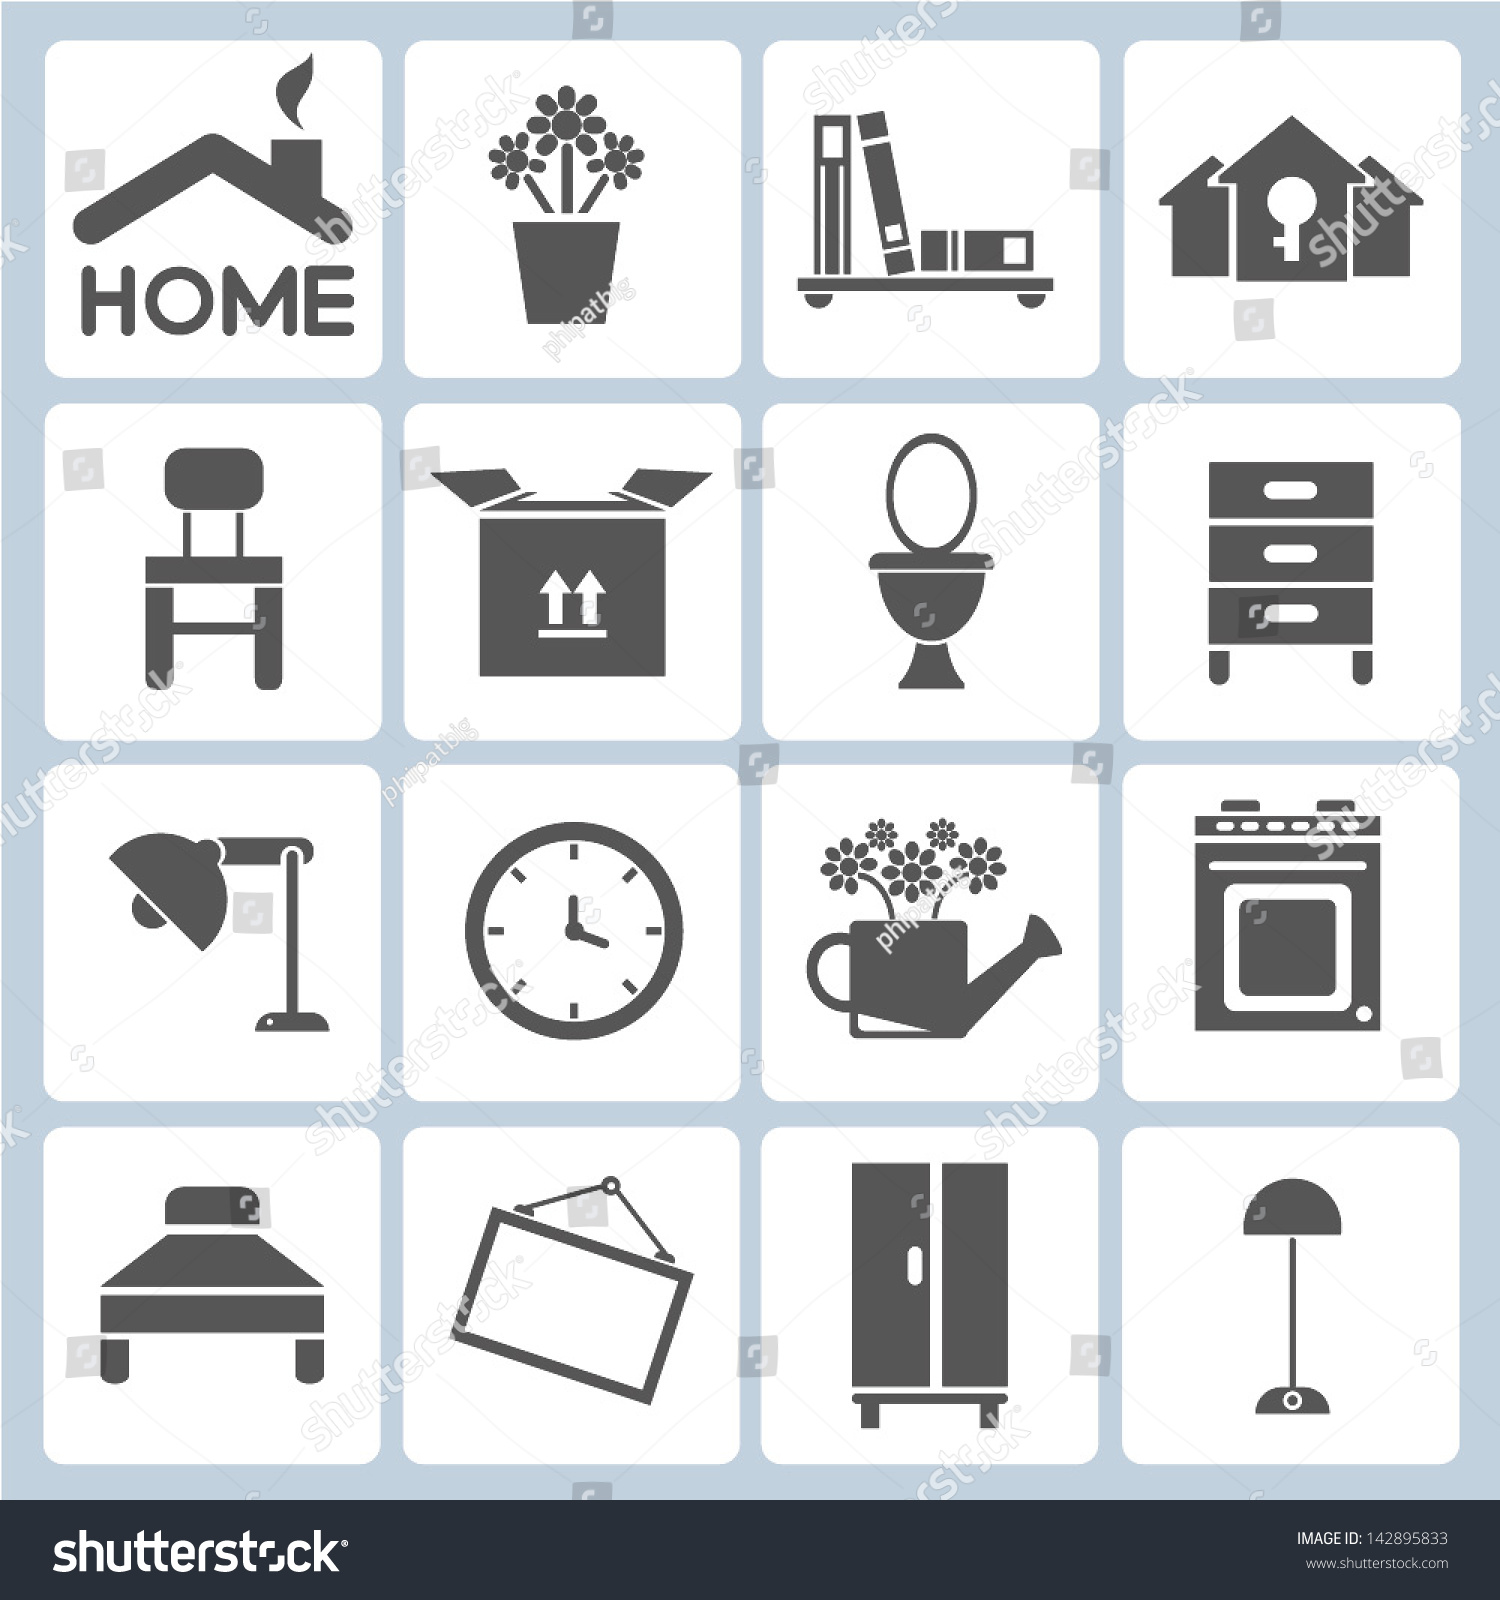 Home icons furniture interior design icon stock vector for Interior design images vector